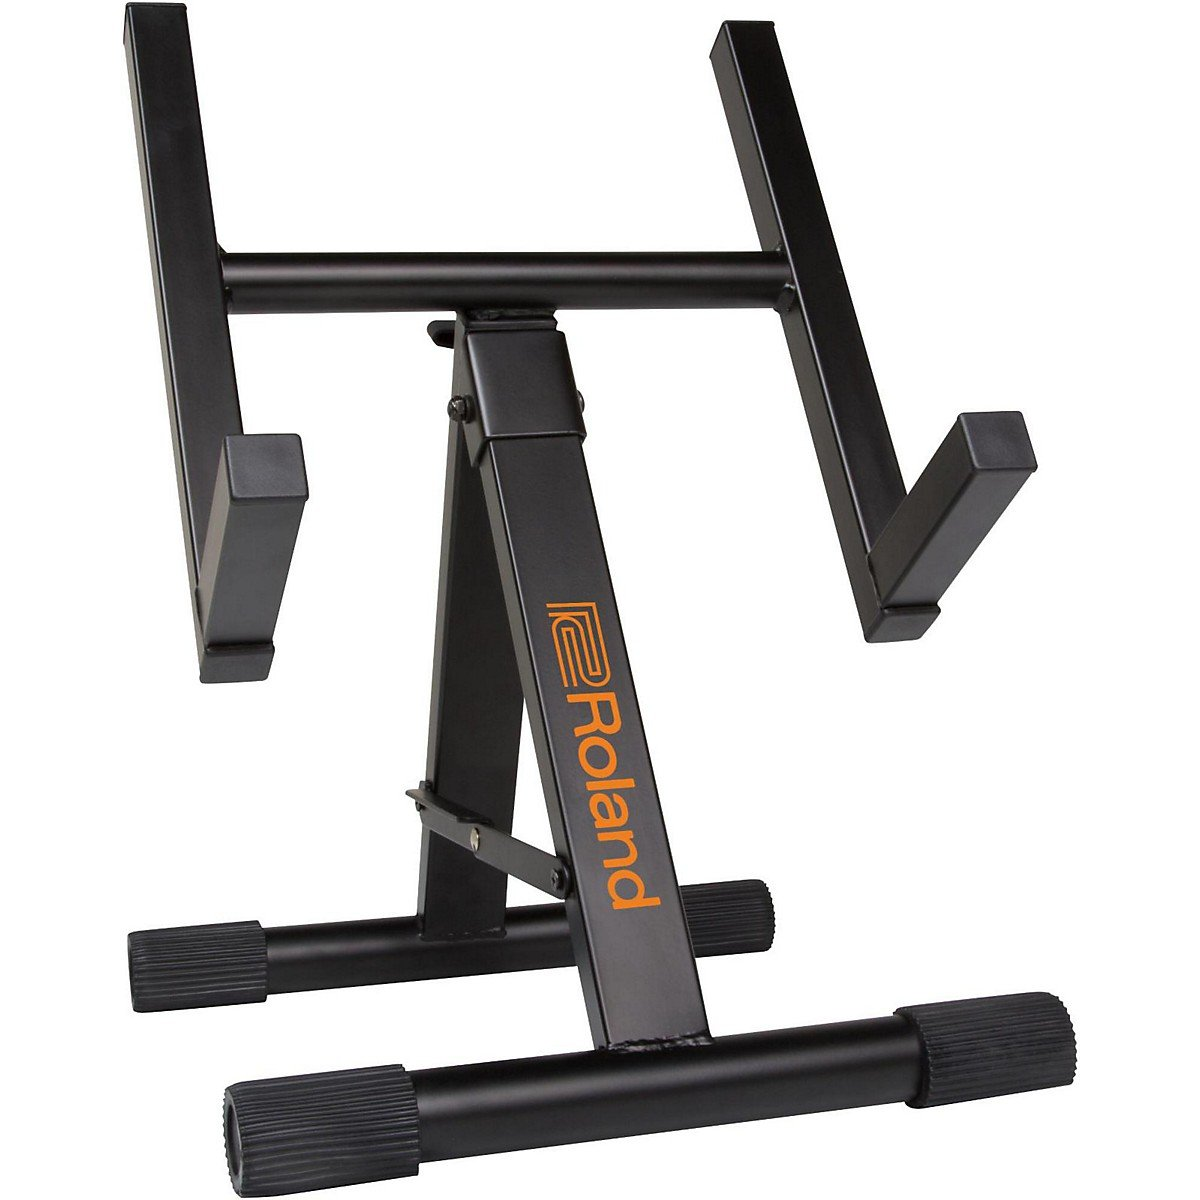 Roland Amplifier Stand (RAS-S01) by Roland